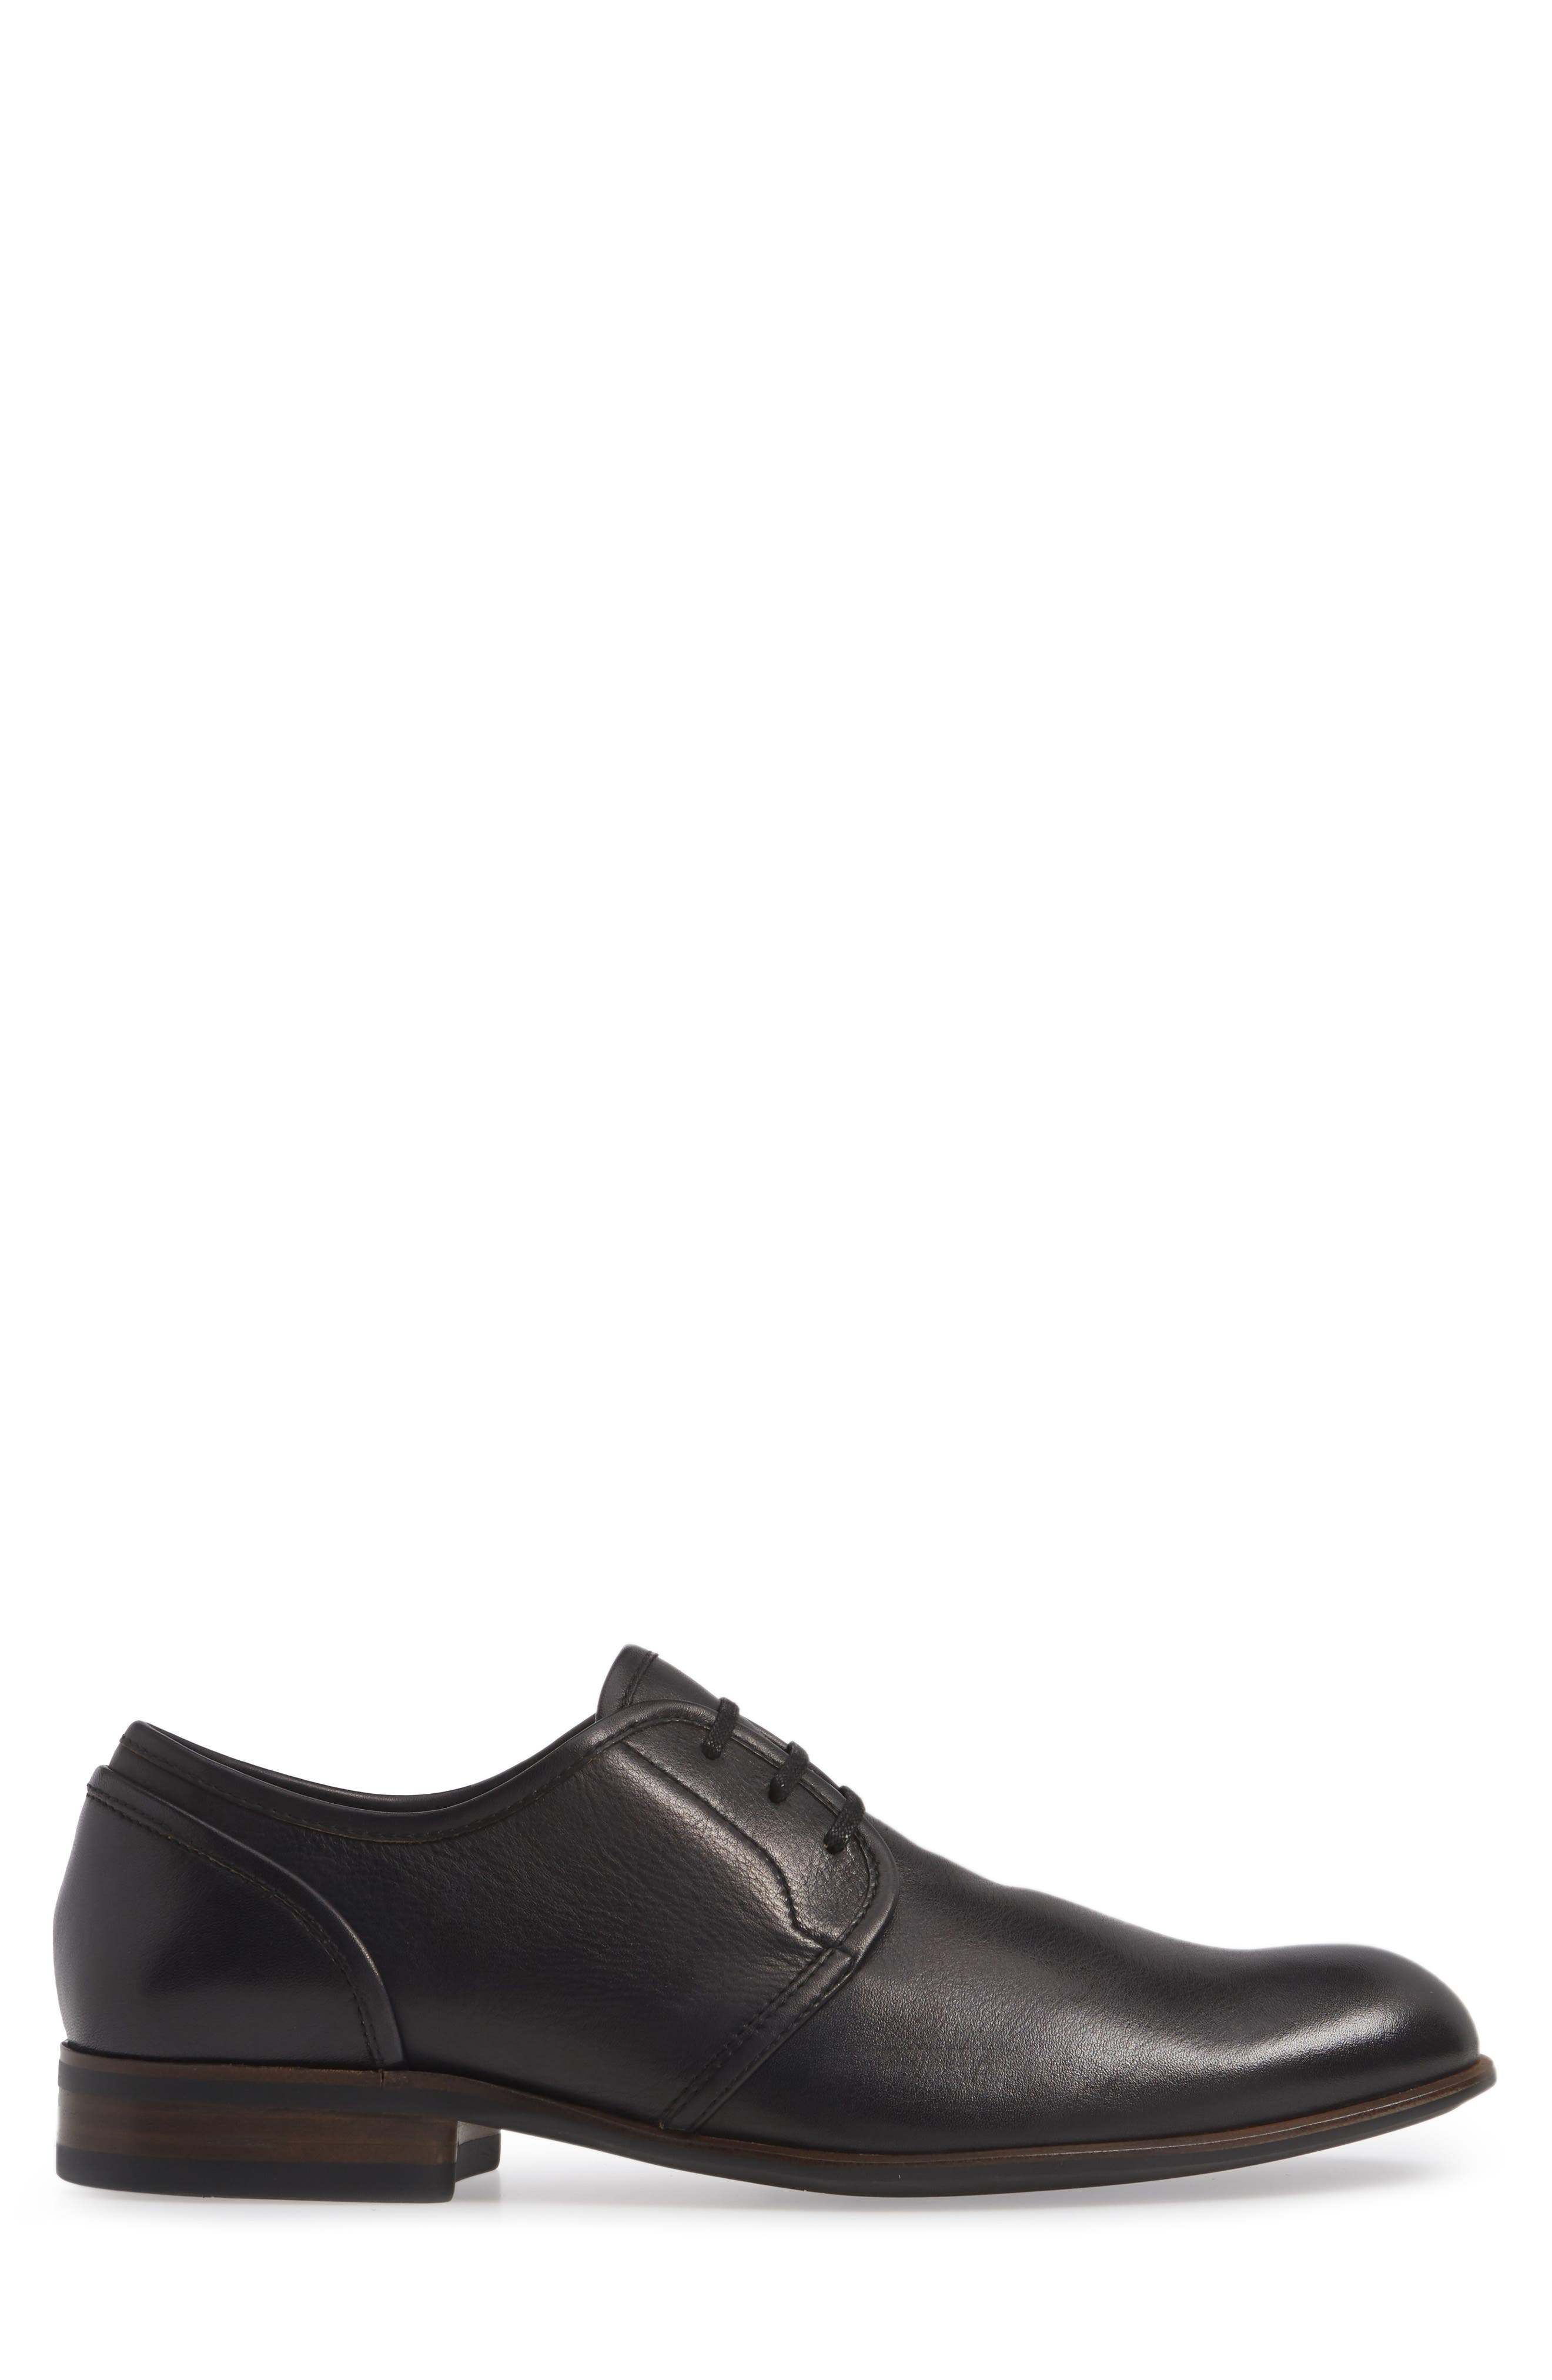 Star USA Seagher Plain Toe Derby,                             Alternate thumbnail 3, color,                             BLACK